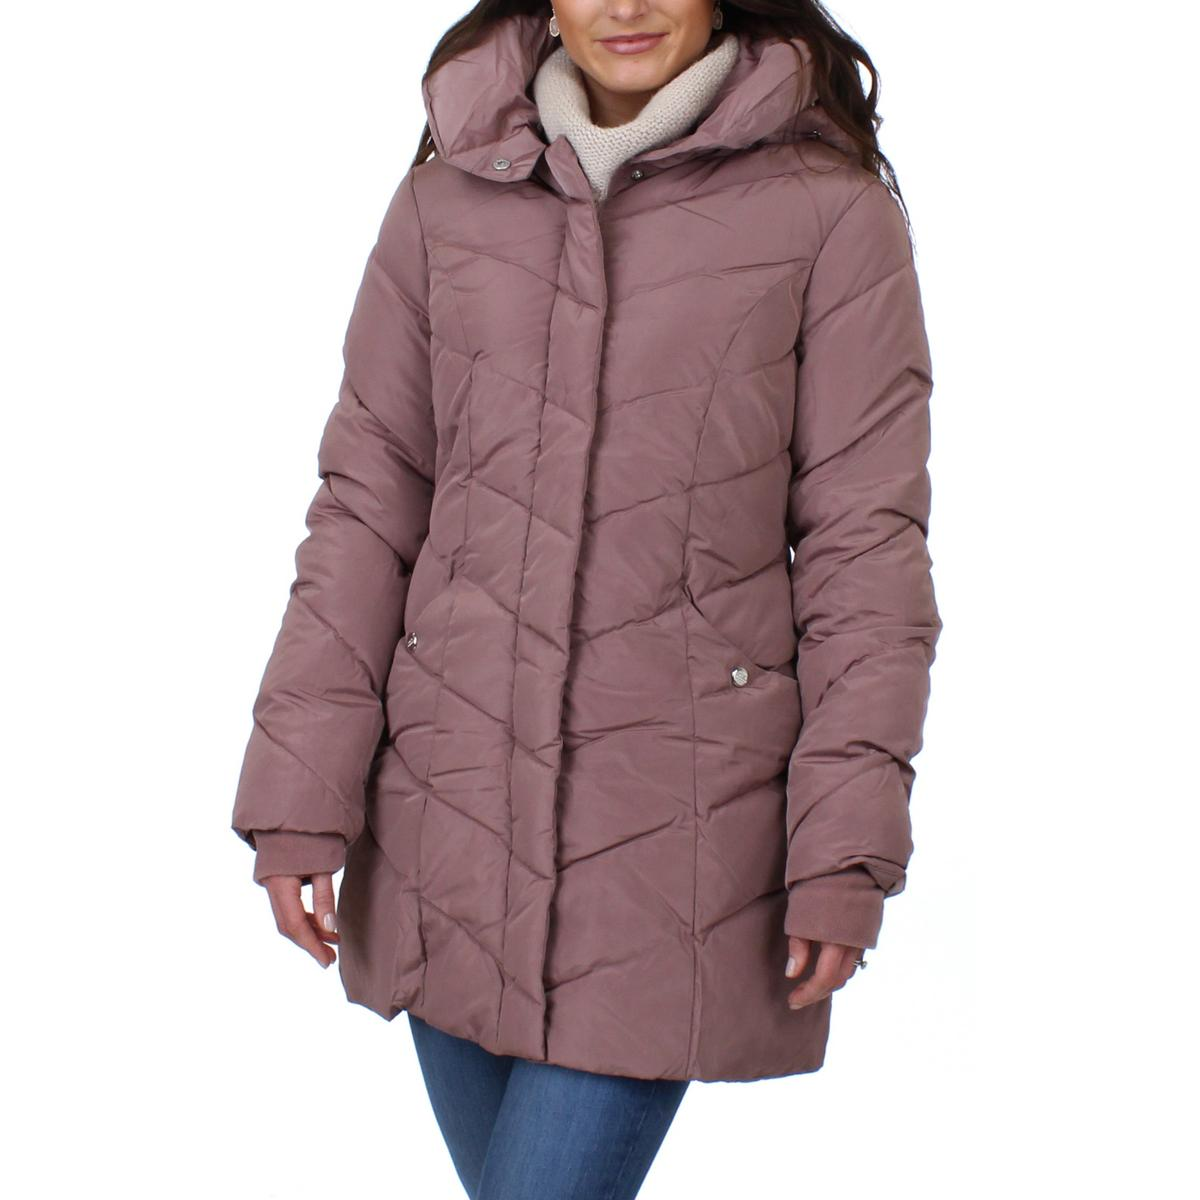 5157870da59 Details about Steve Madden Womens Winter Quilted Cold Weather Puffer Coat  Outerwear BHFO 2513